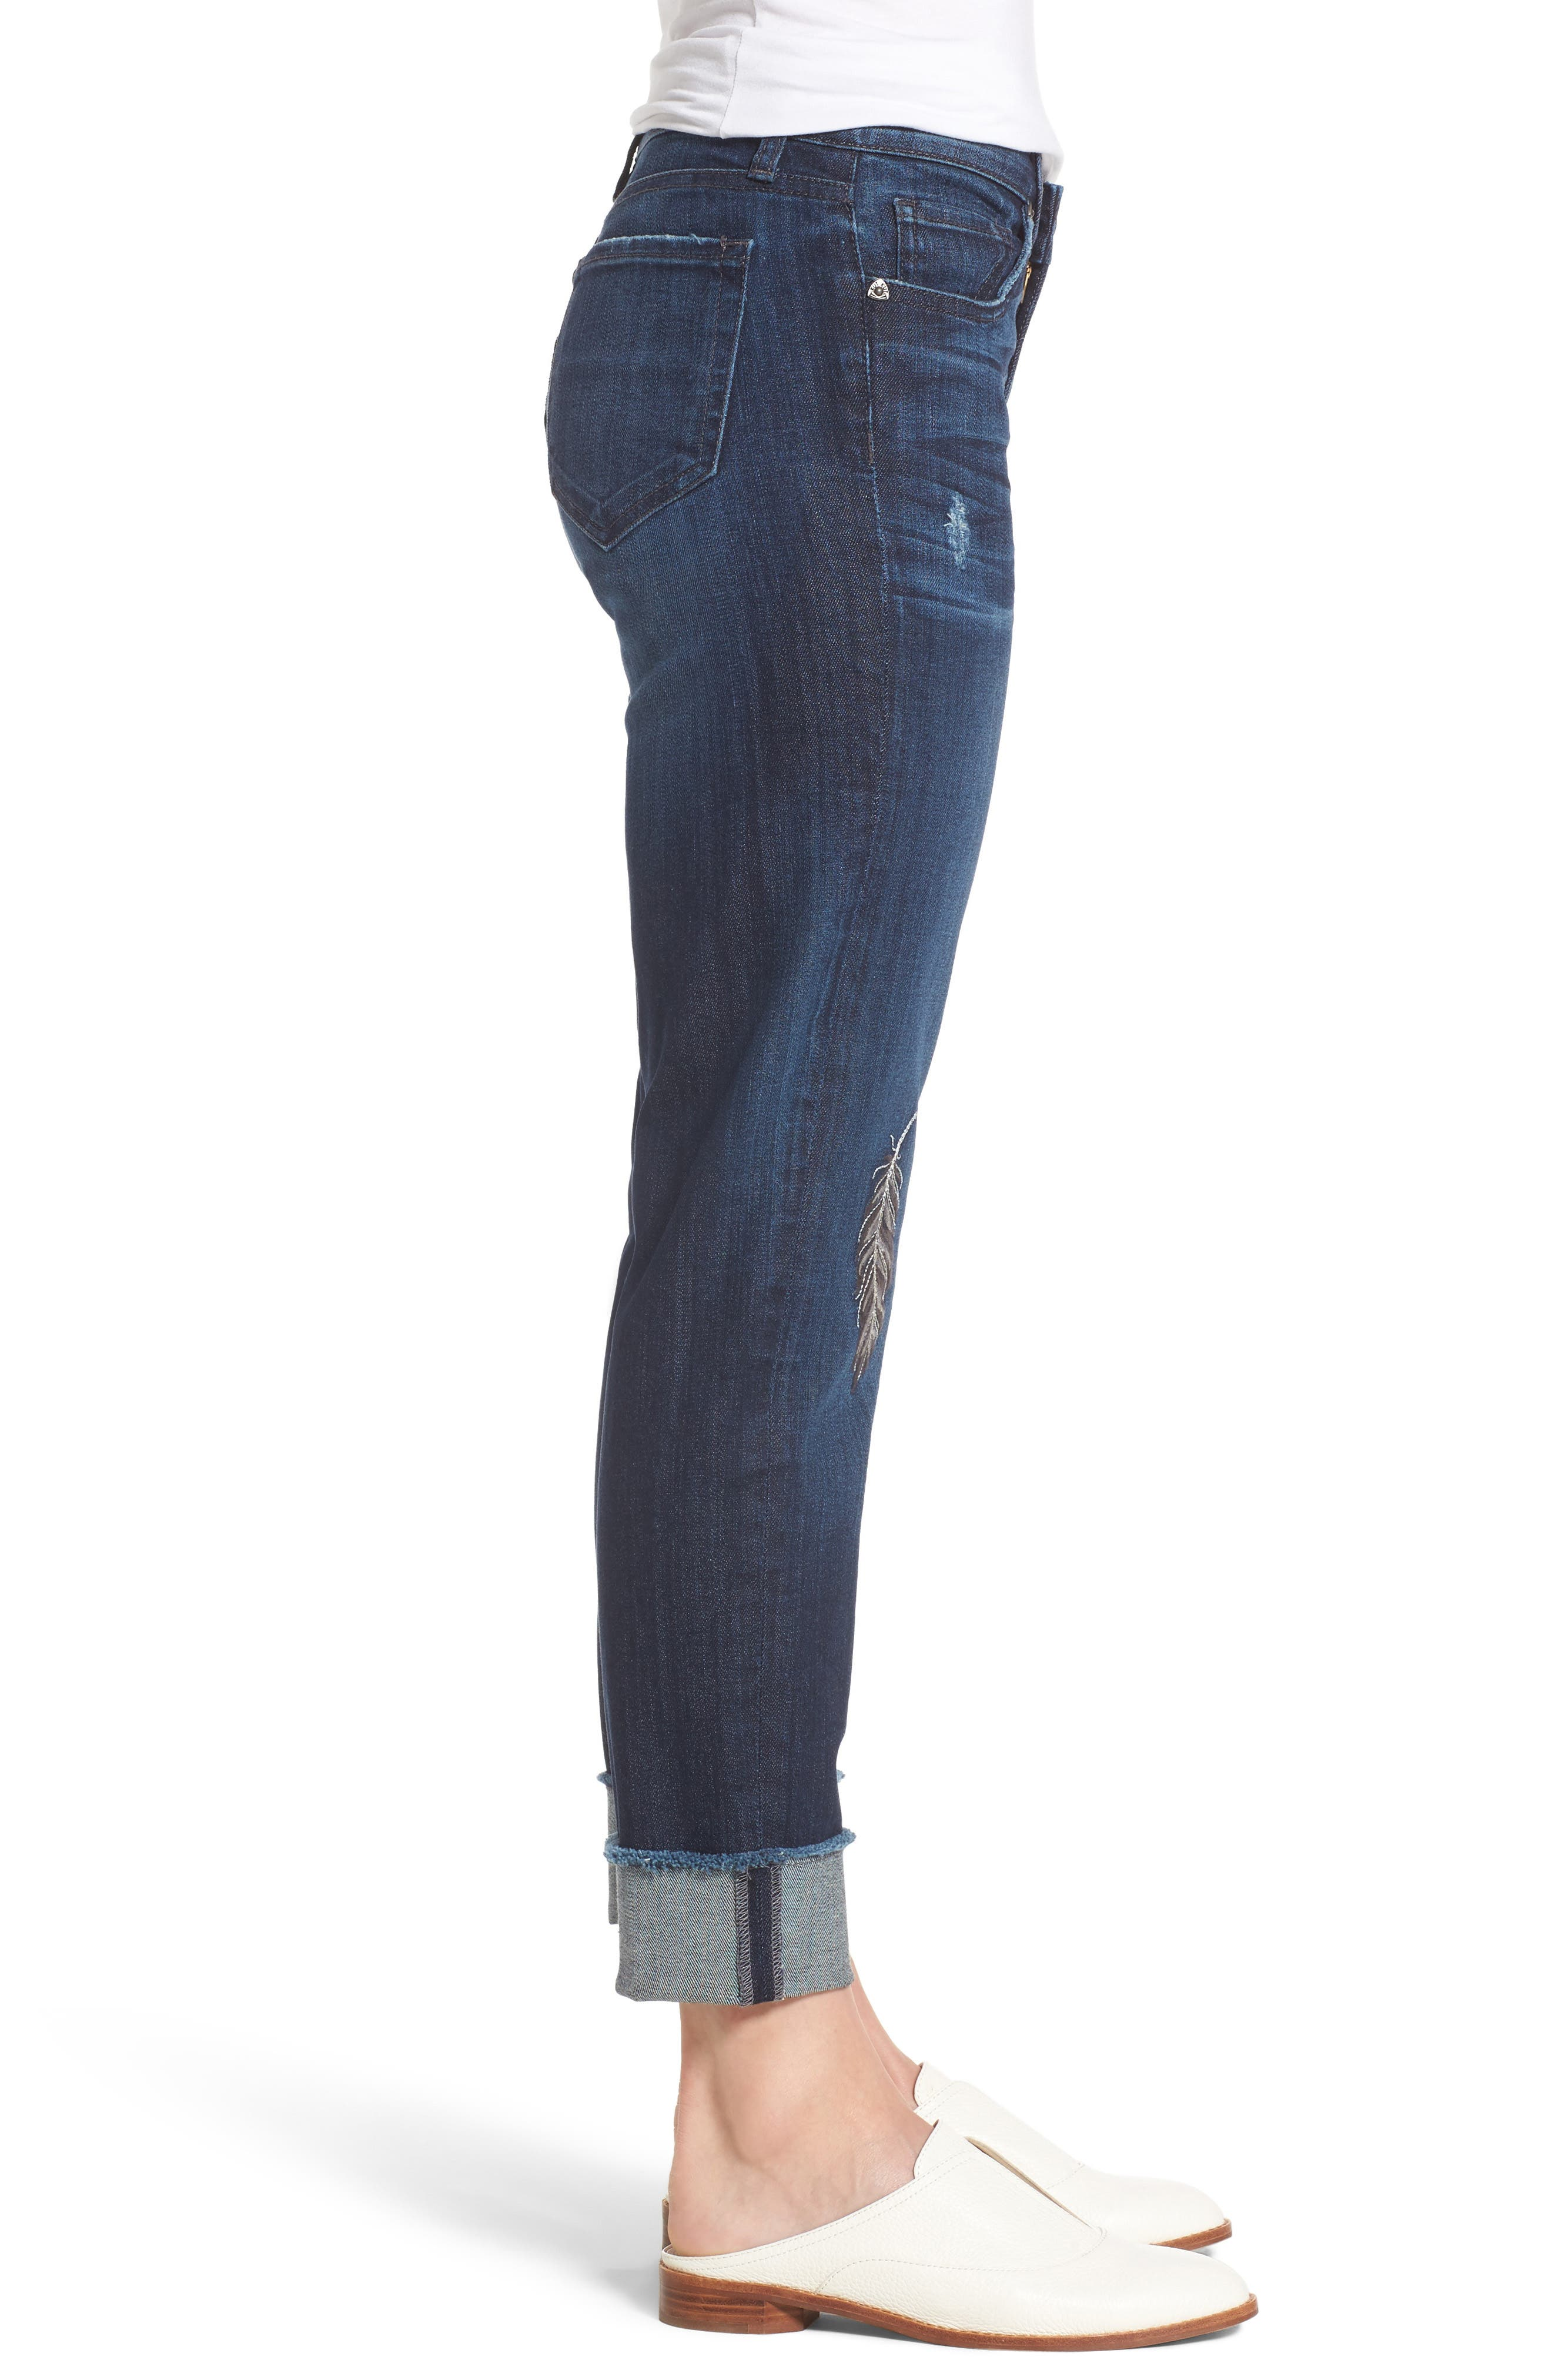 Alternate Image 3  - KUT from the Kloth Amy Cuffed Crop Jeans (Overt)